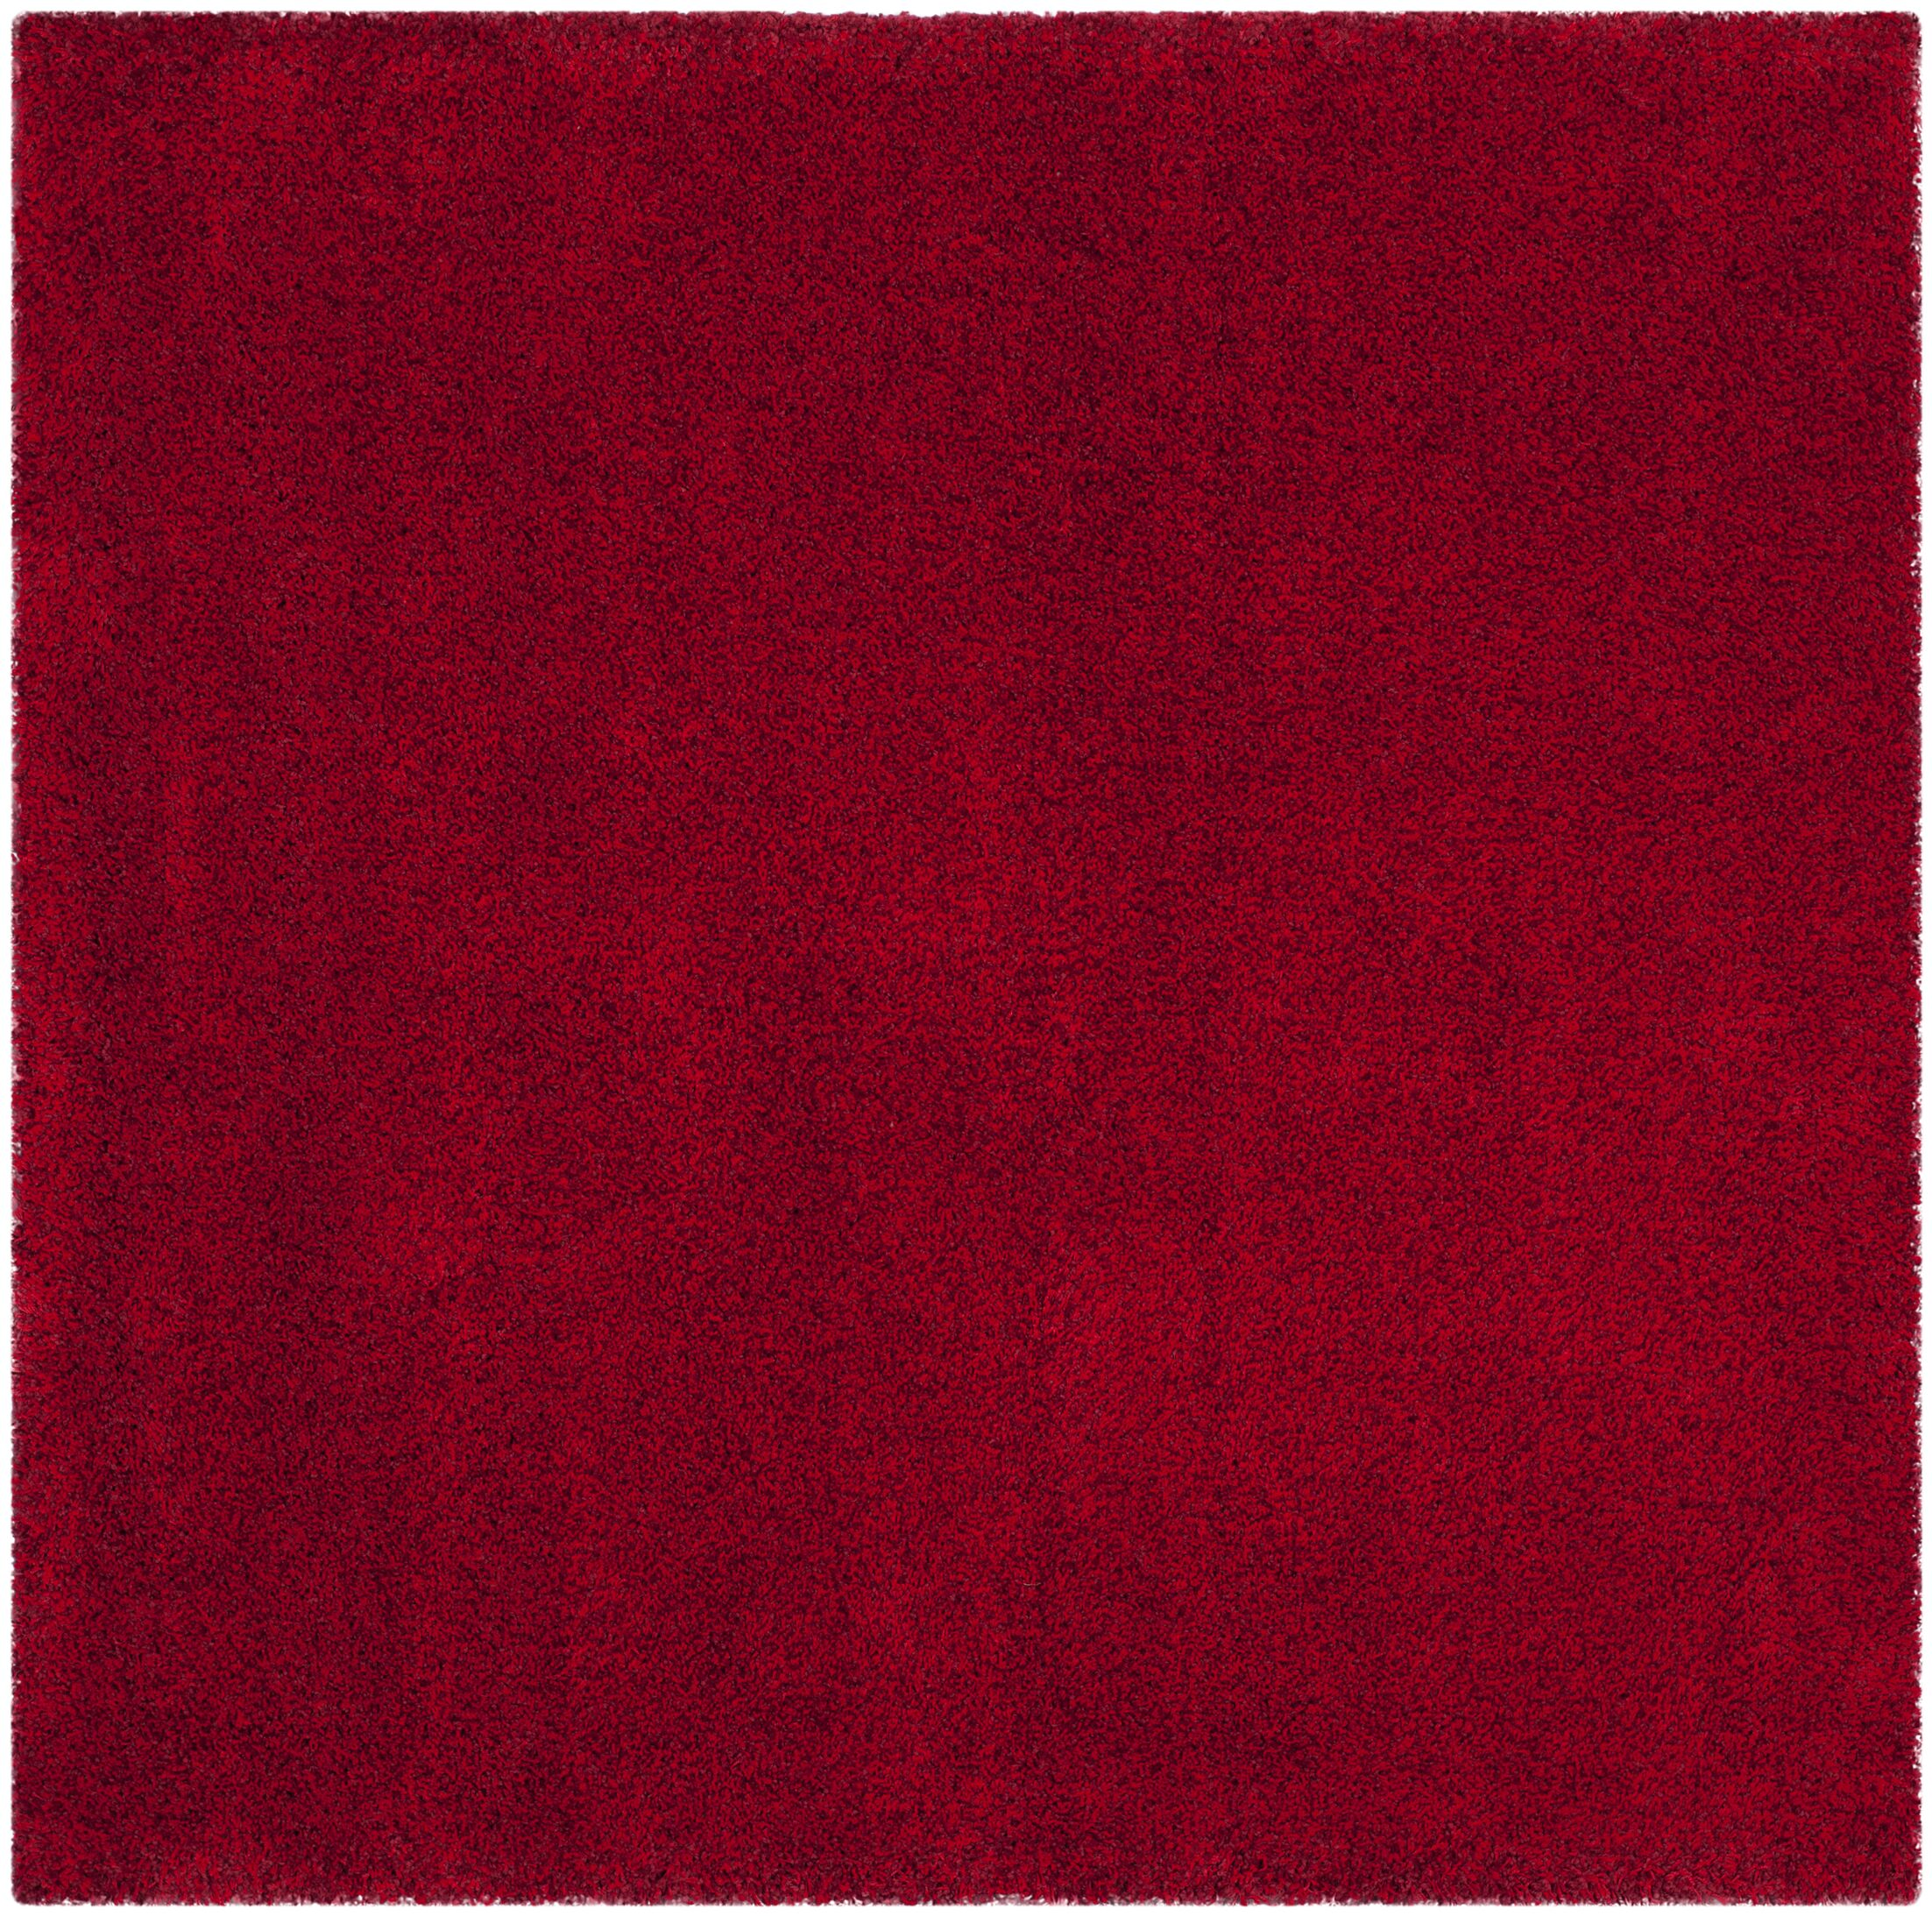 Brickner Red Area Rug Rug Size: Square 6'7